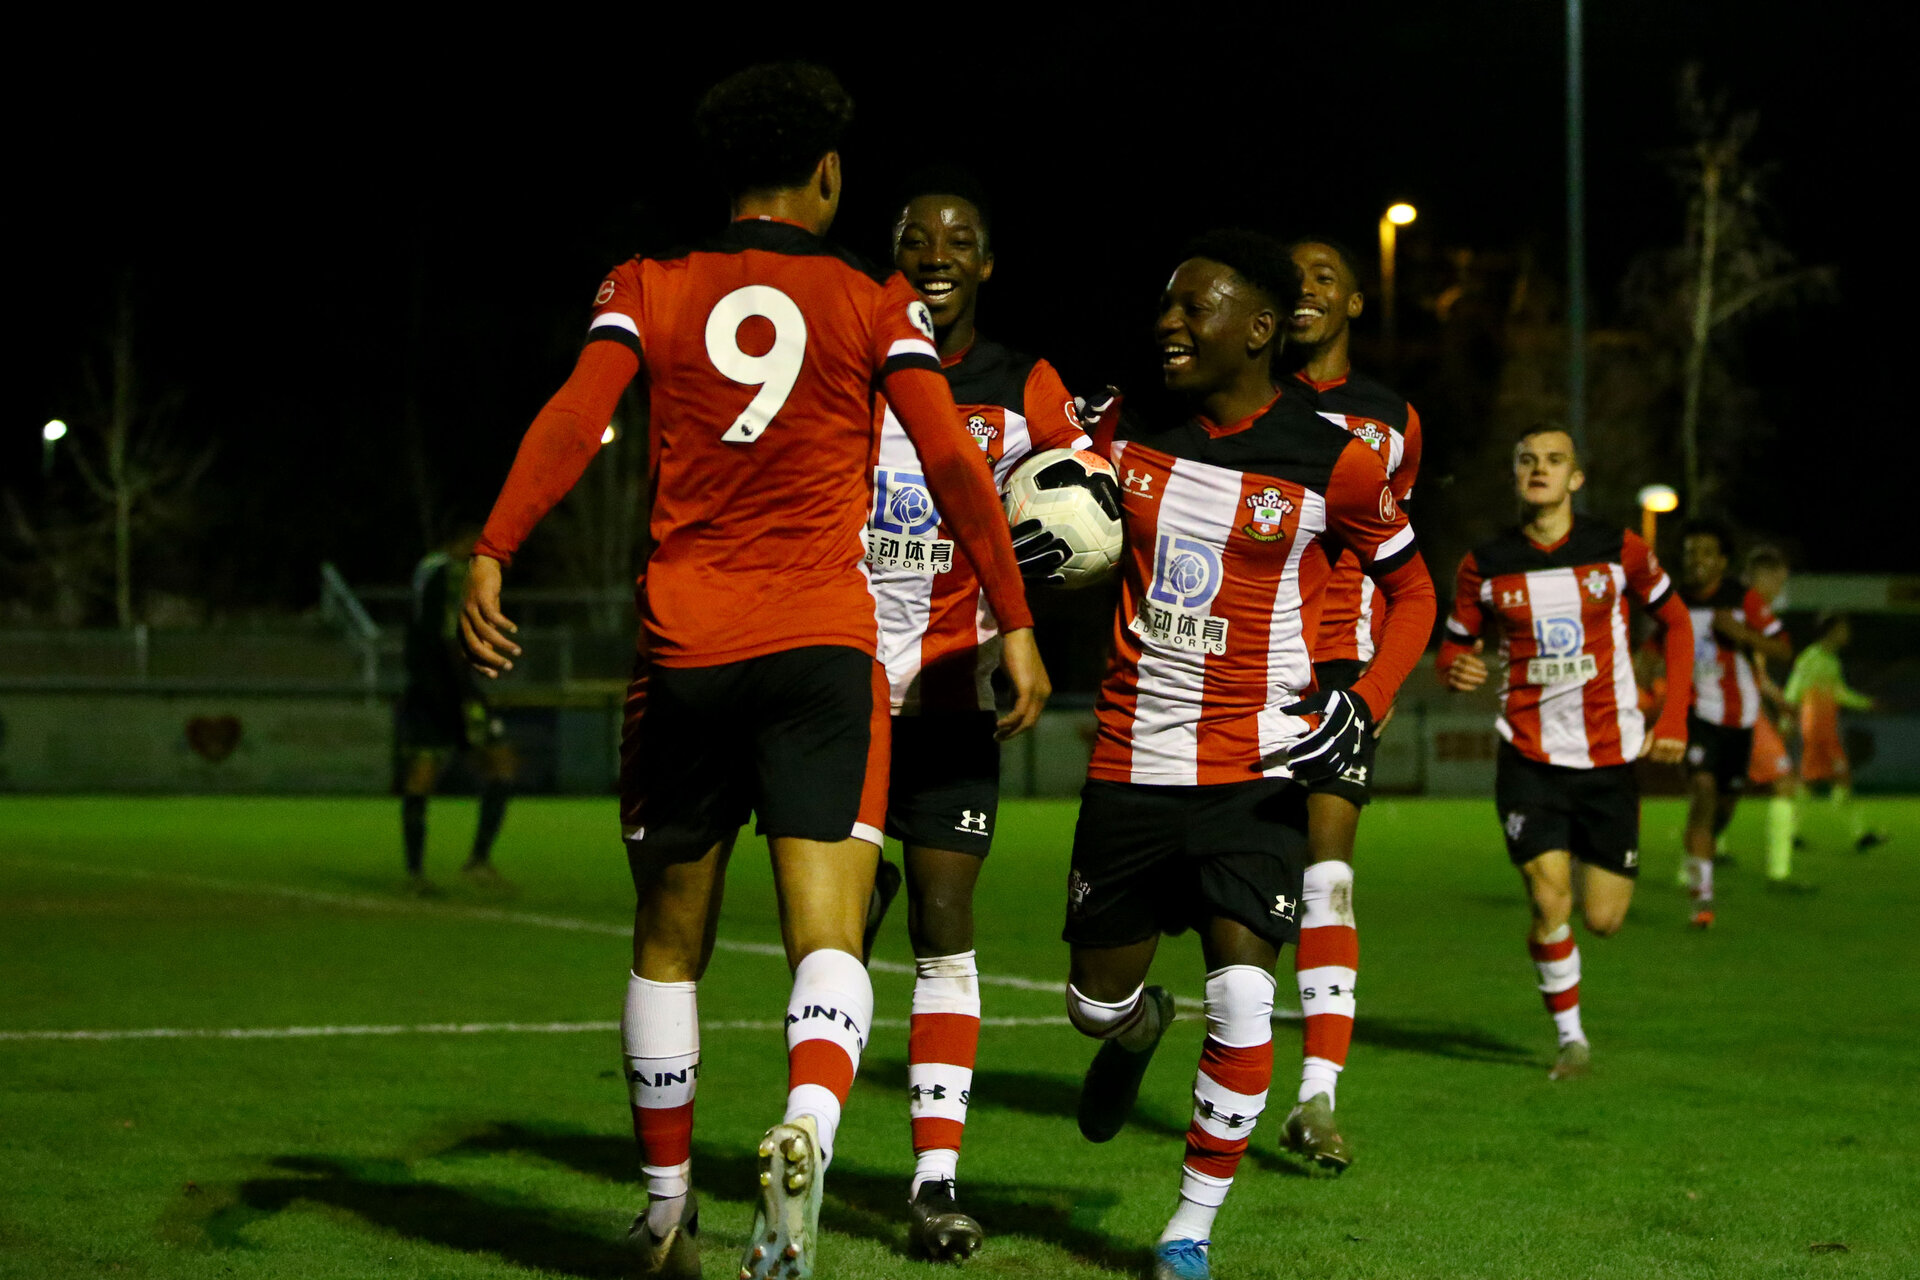 SOUTHAMPTON, ENGLAND - DECEMBER 06: Christian Norton goal celebration during the Premier League 2 match between Southampton FC U23 and Man City U23 at Snows Stadium, AFC Totton on December 06, 2019 in Southampton, United Kingdom. (Photo by Isabelle Field/Southampton FC via Getty Images)